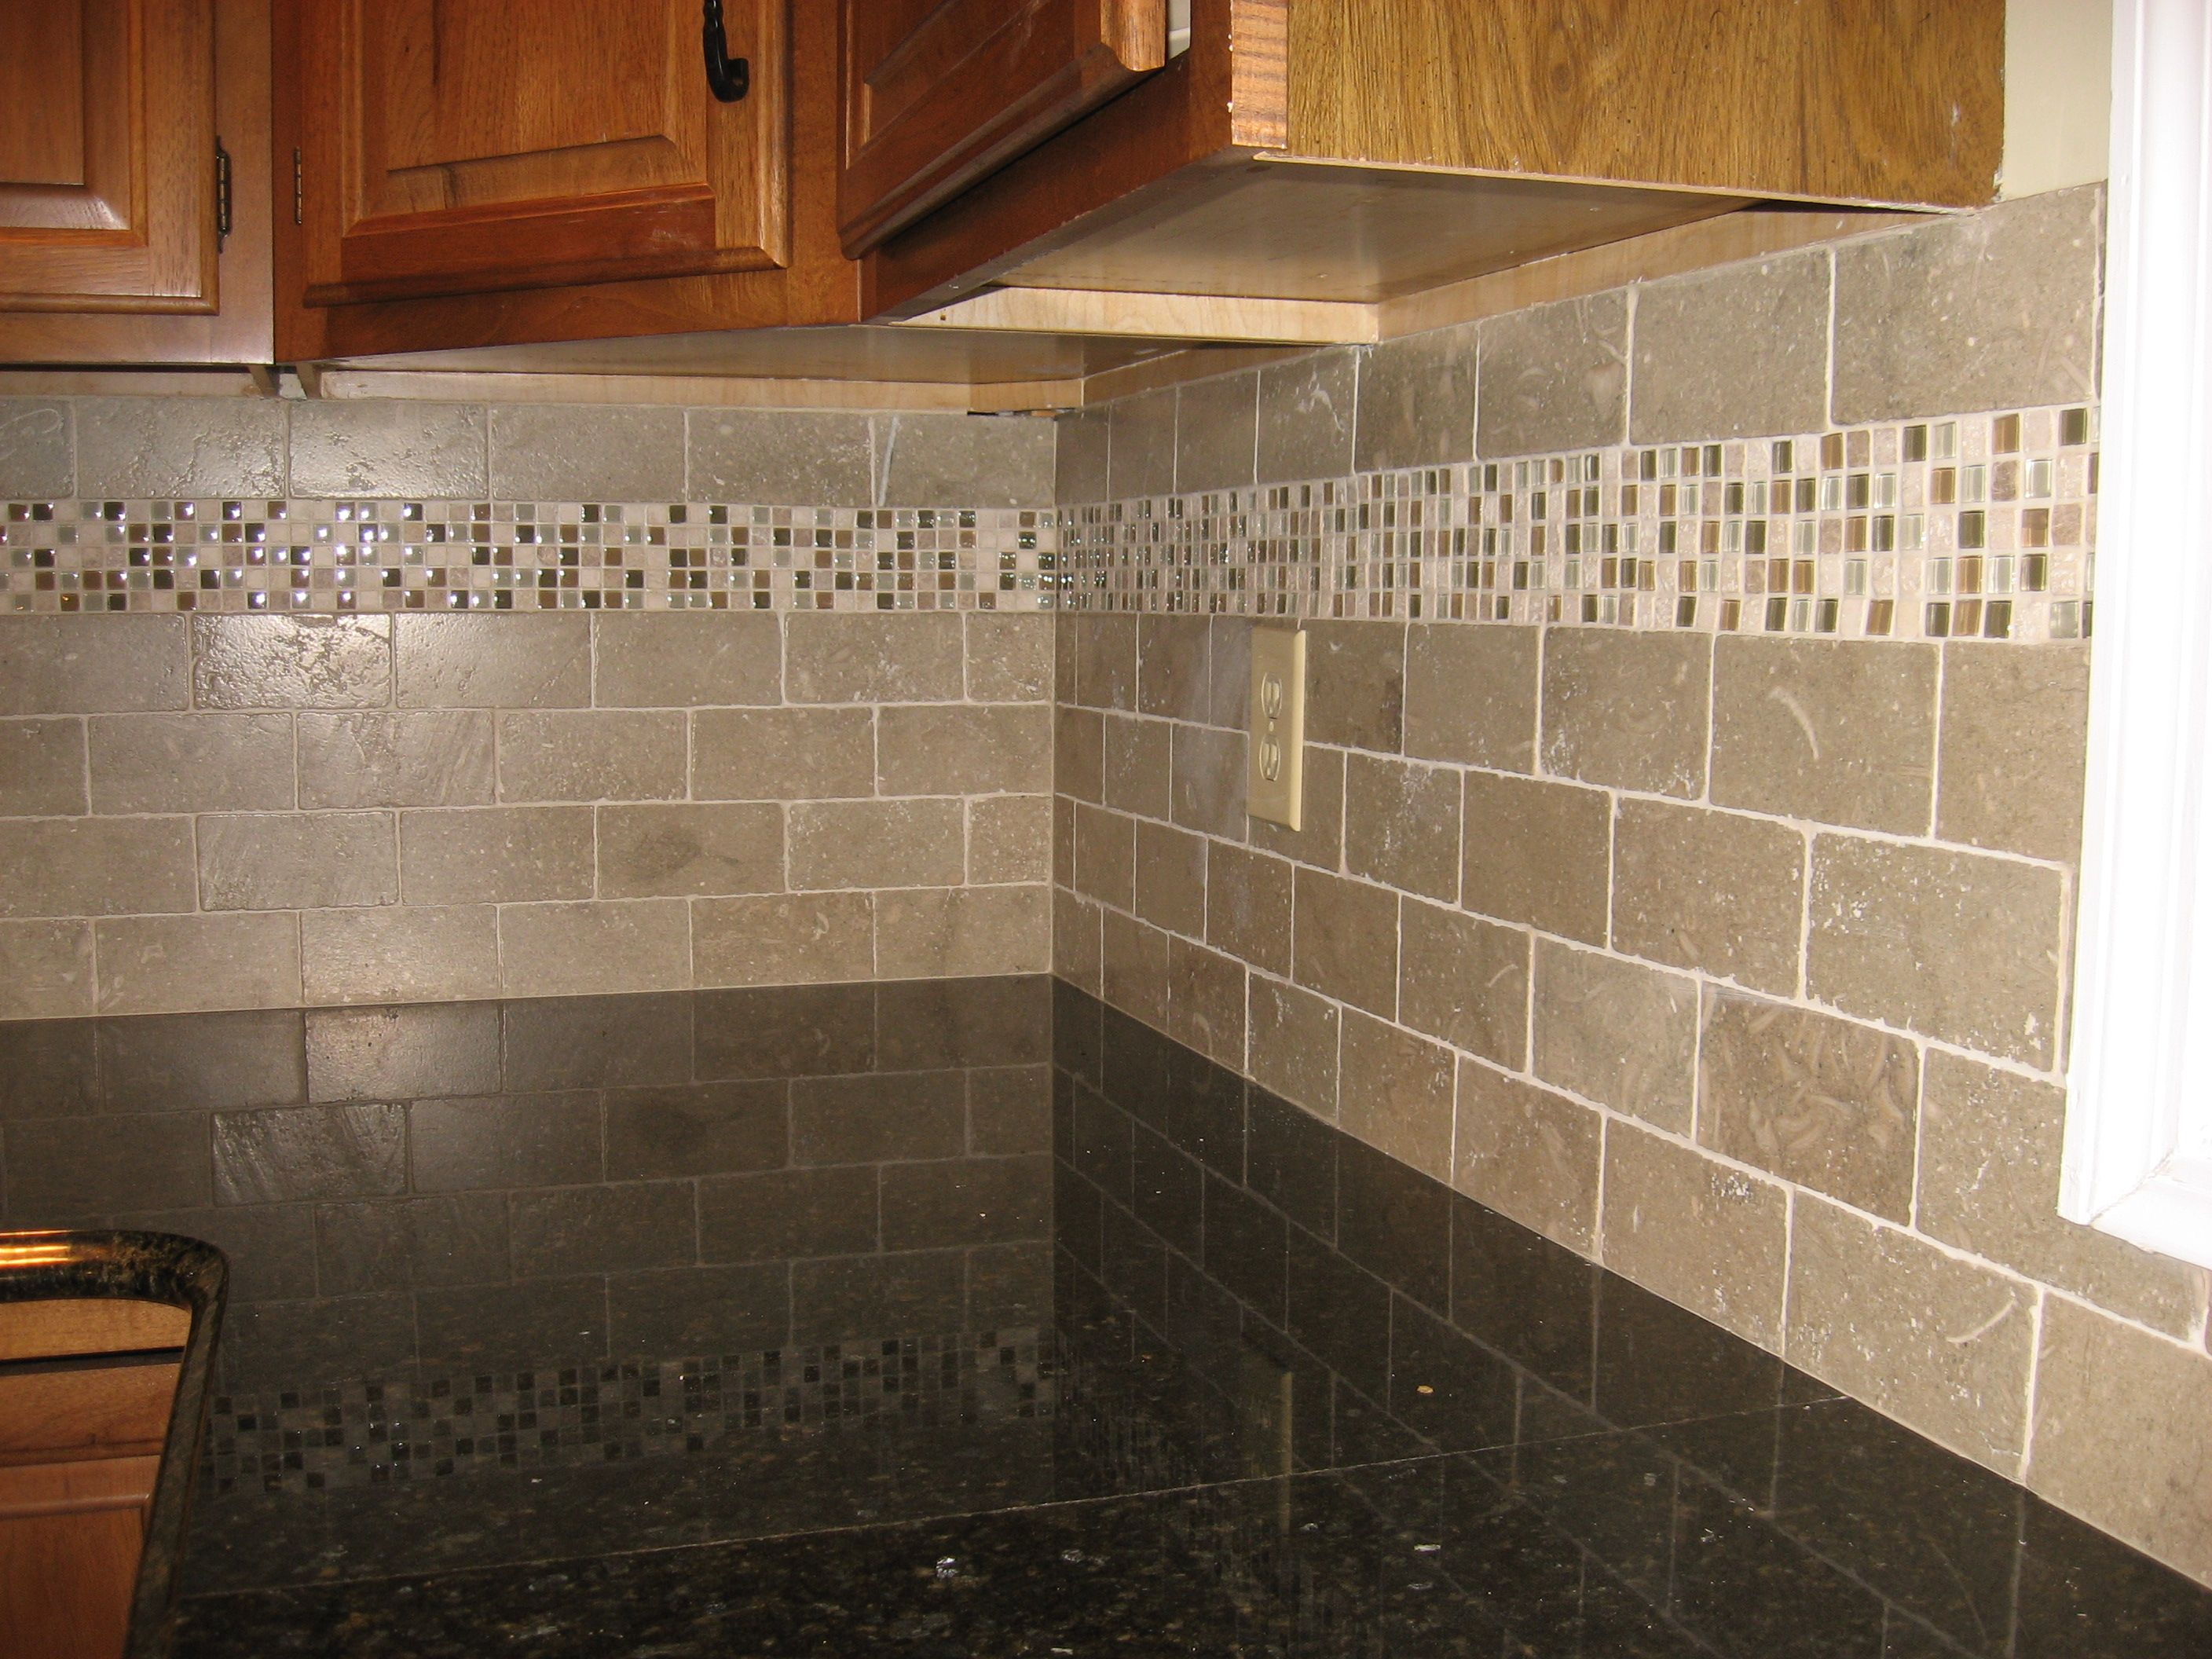 Granite Kitchen Tiles Uba Tuba Granite Countertop With A Scabos Tile Backsplash Cut Into